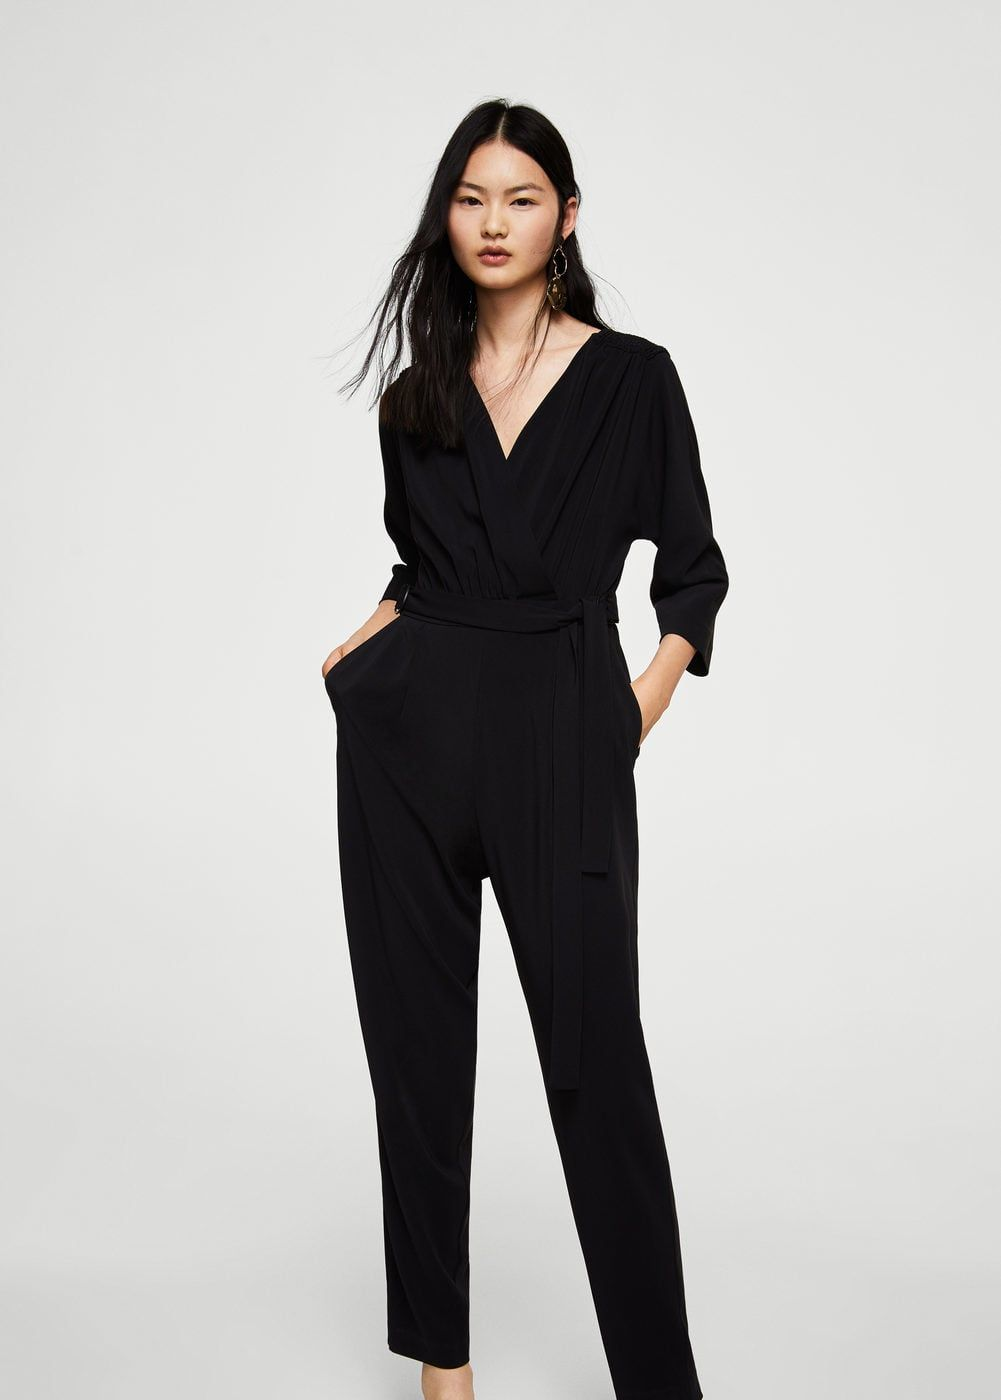 40b2fbd7e3 Flowy fabric Long design Wrap neckline Long sleeve Back zip closure  Jumpsuit Mango